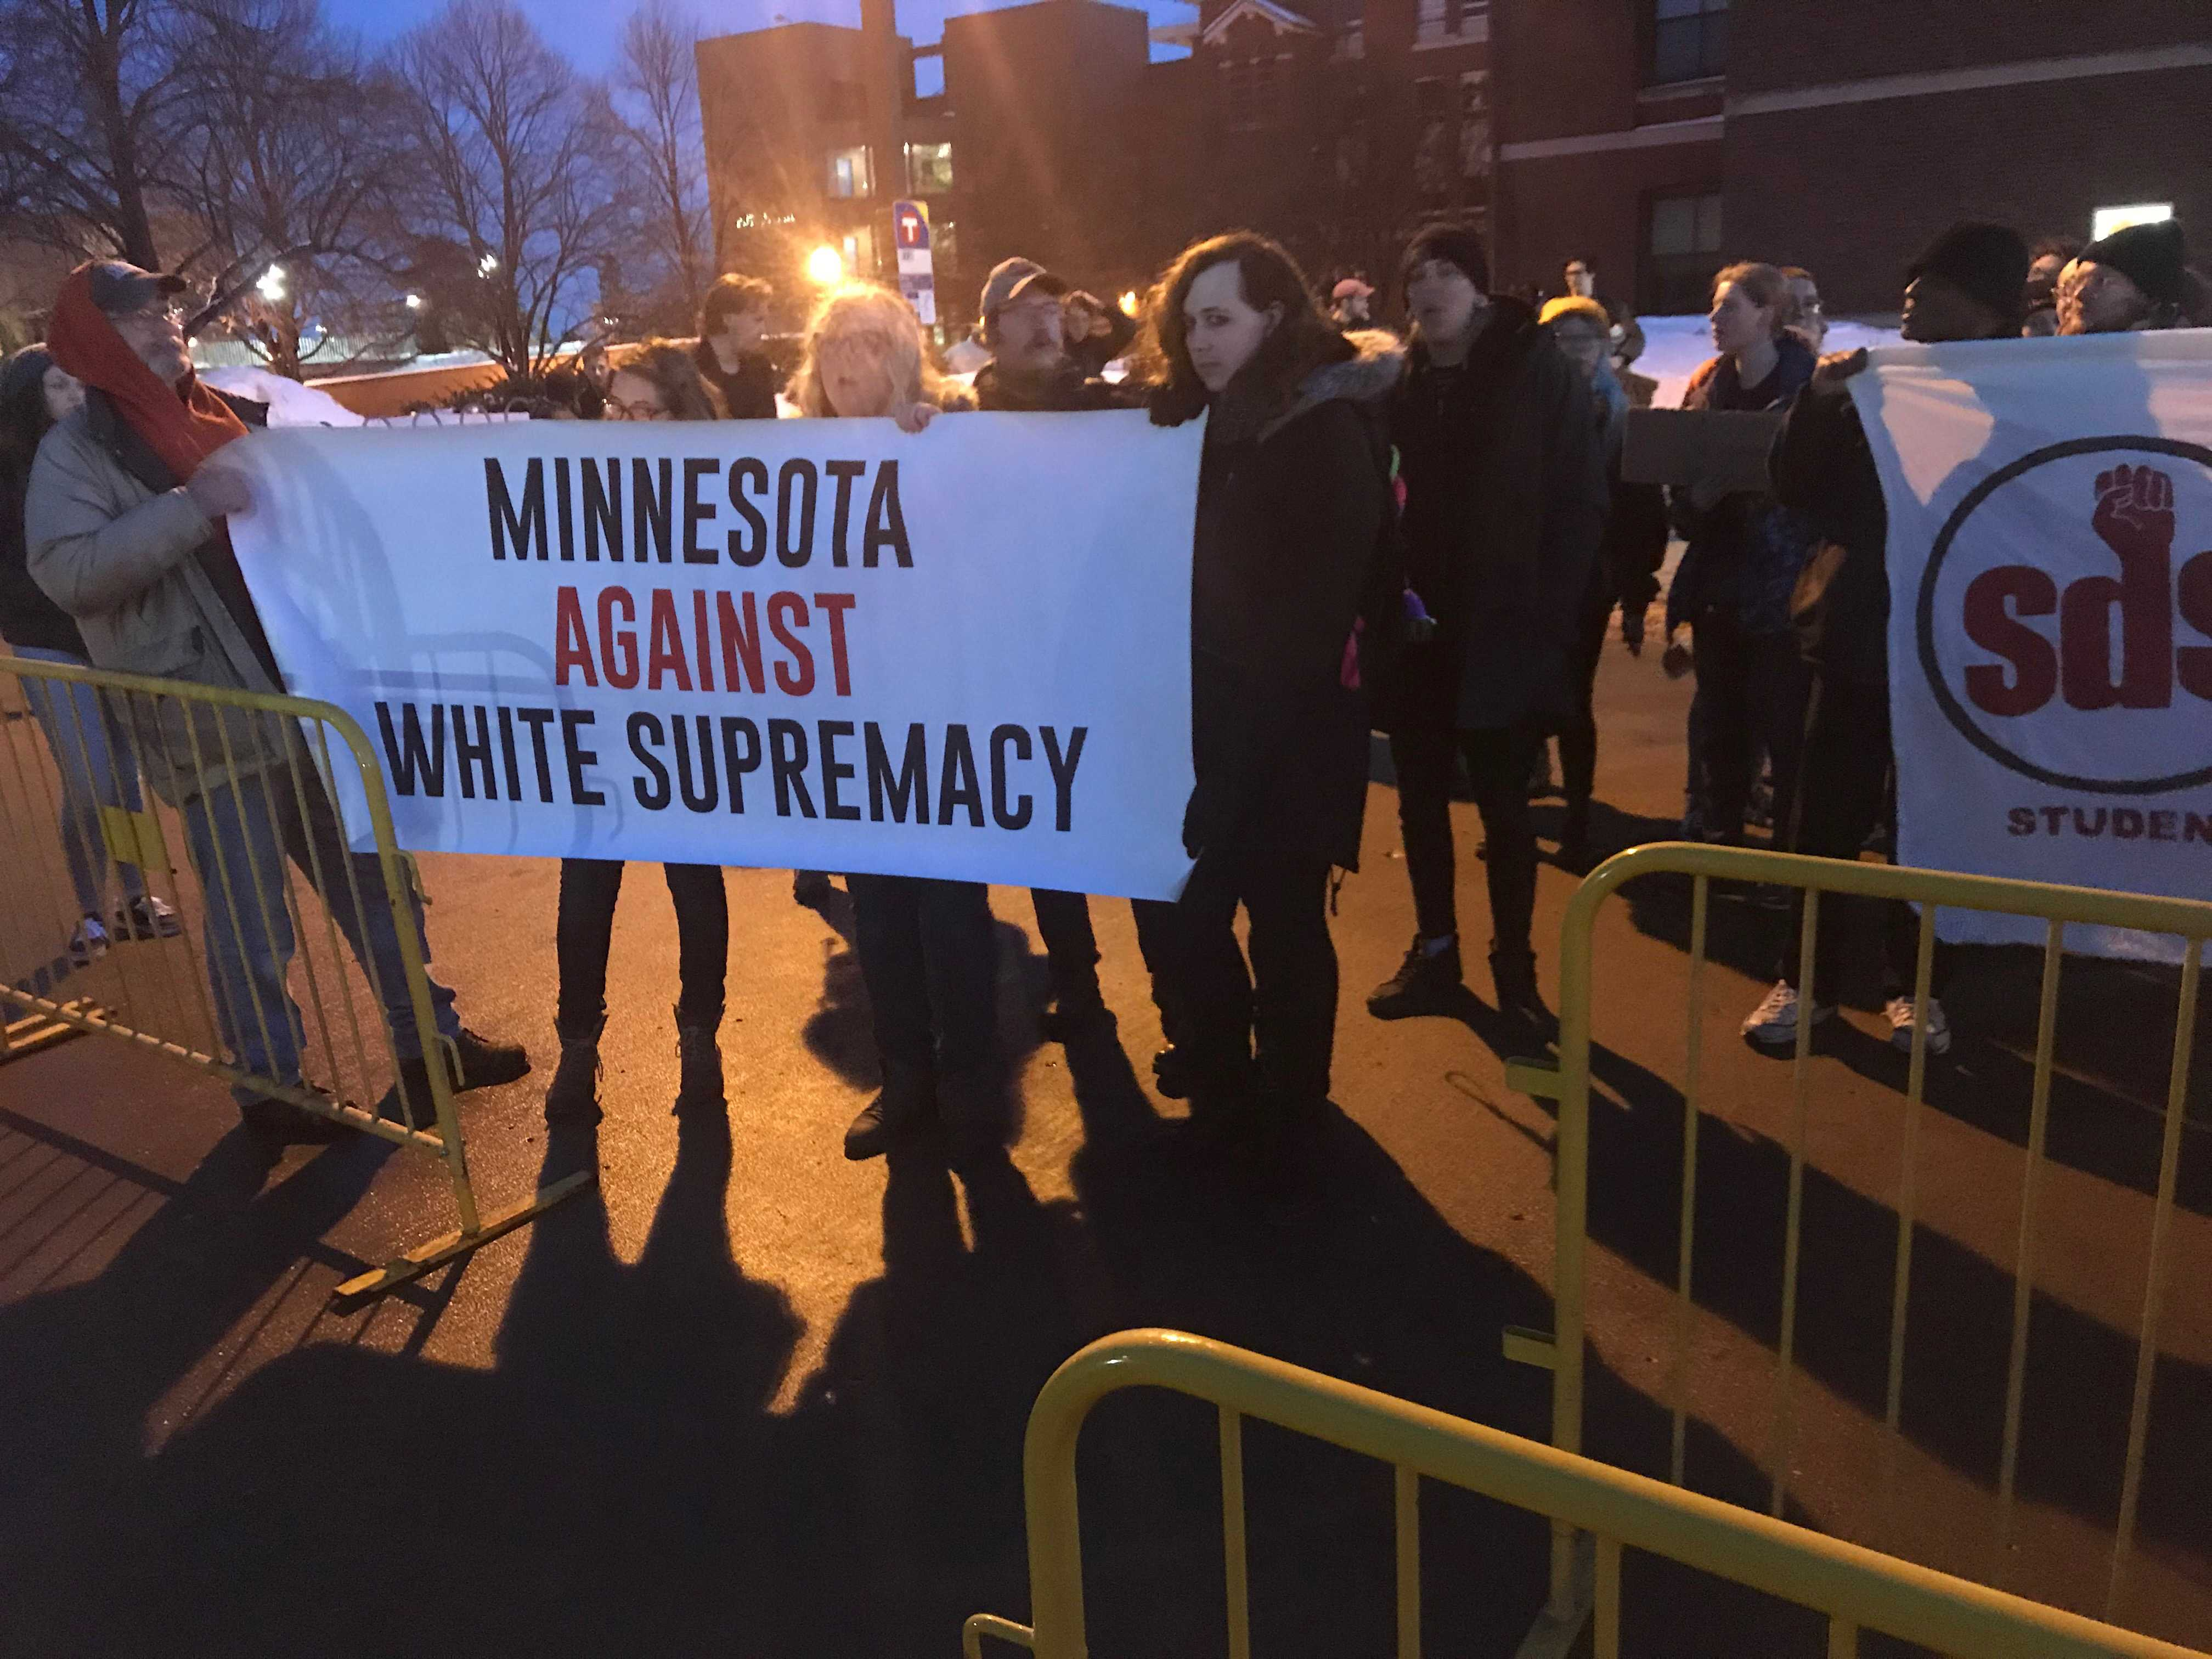 Students from the University of Minnesota protest the appearance of far-right writer and talk show host Ben Shapiro at the school's St. Paul campus. Photo by Hannah Catlin '21.